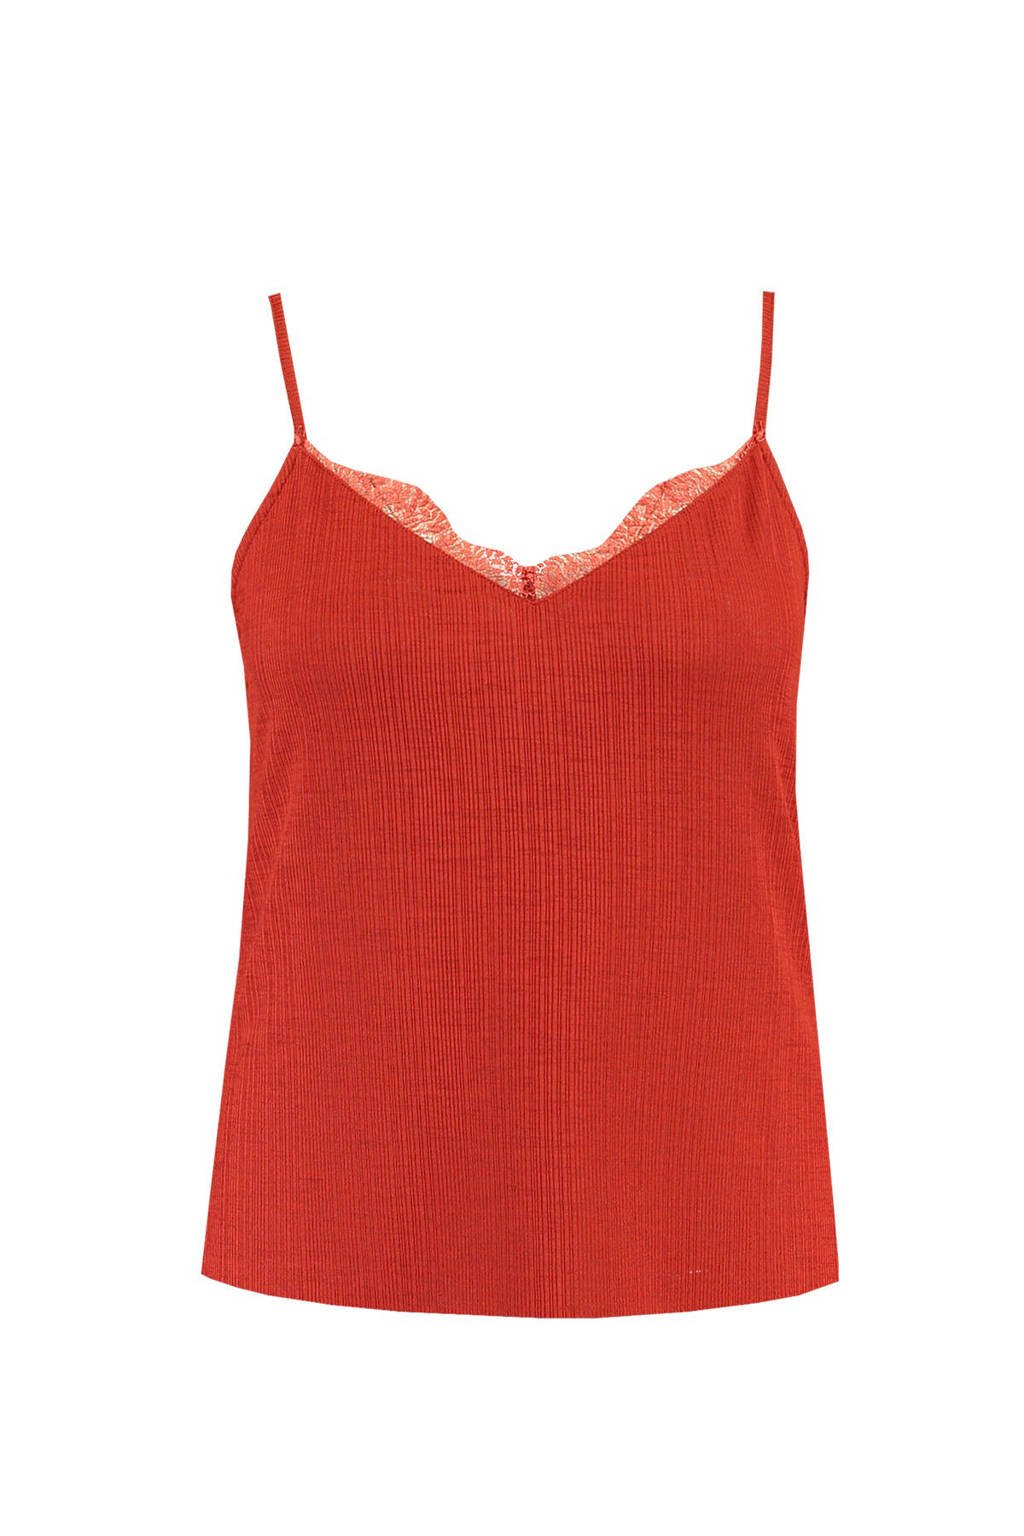 MS Mode spaghetti top rood, Rood